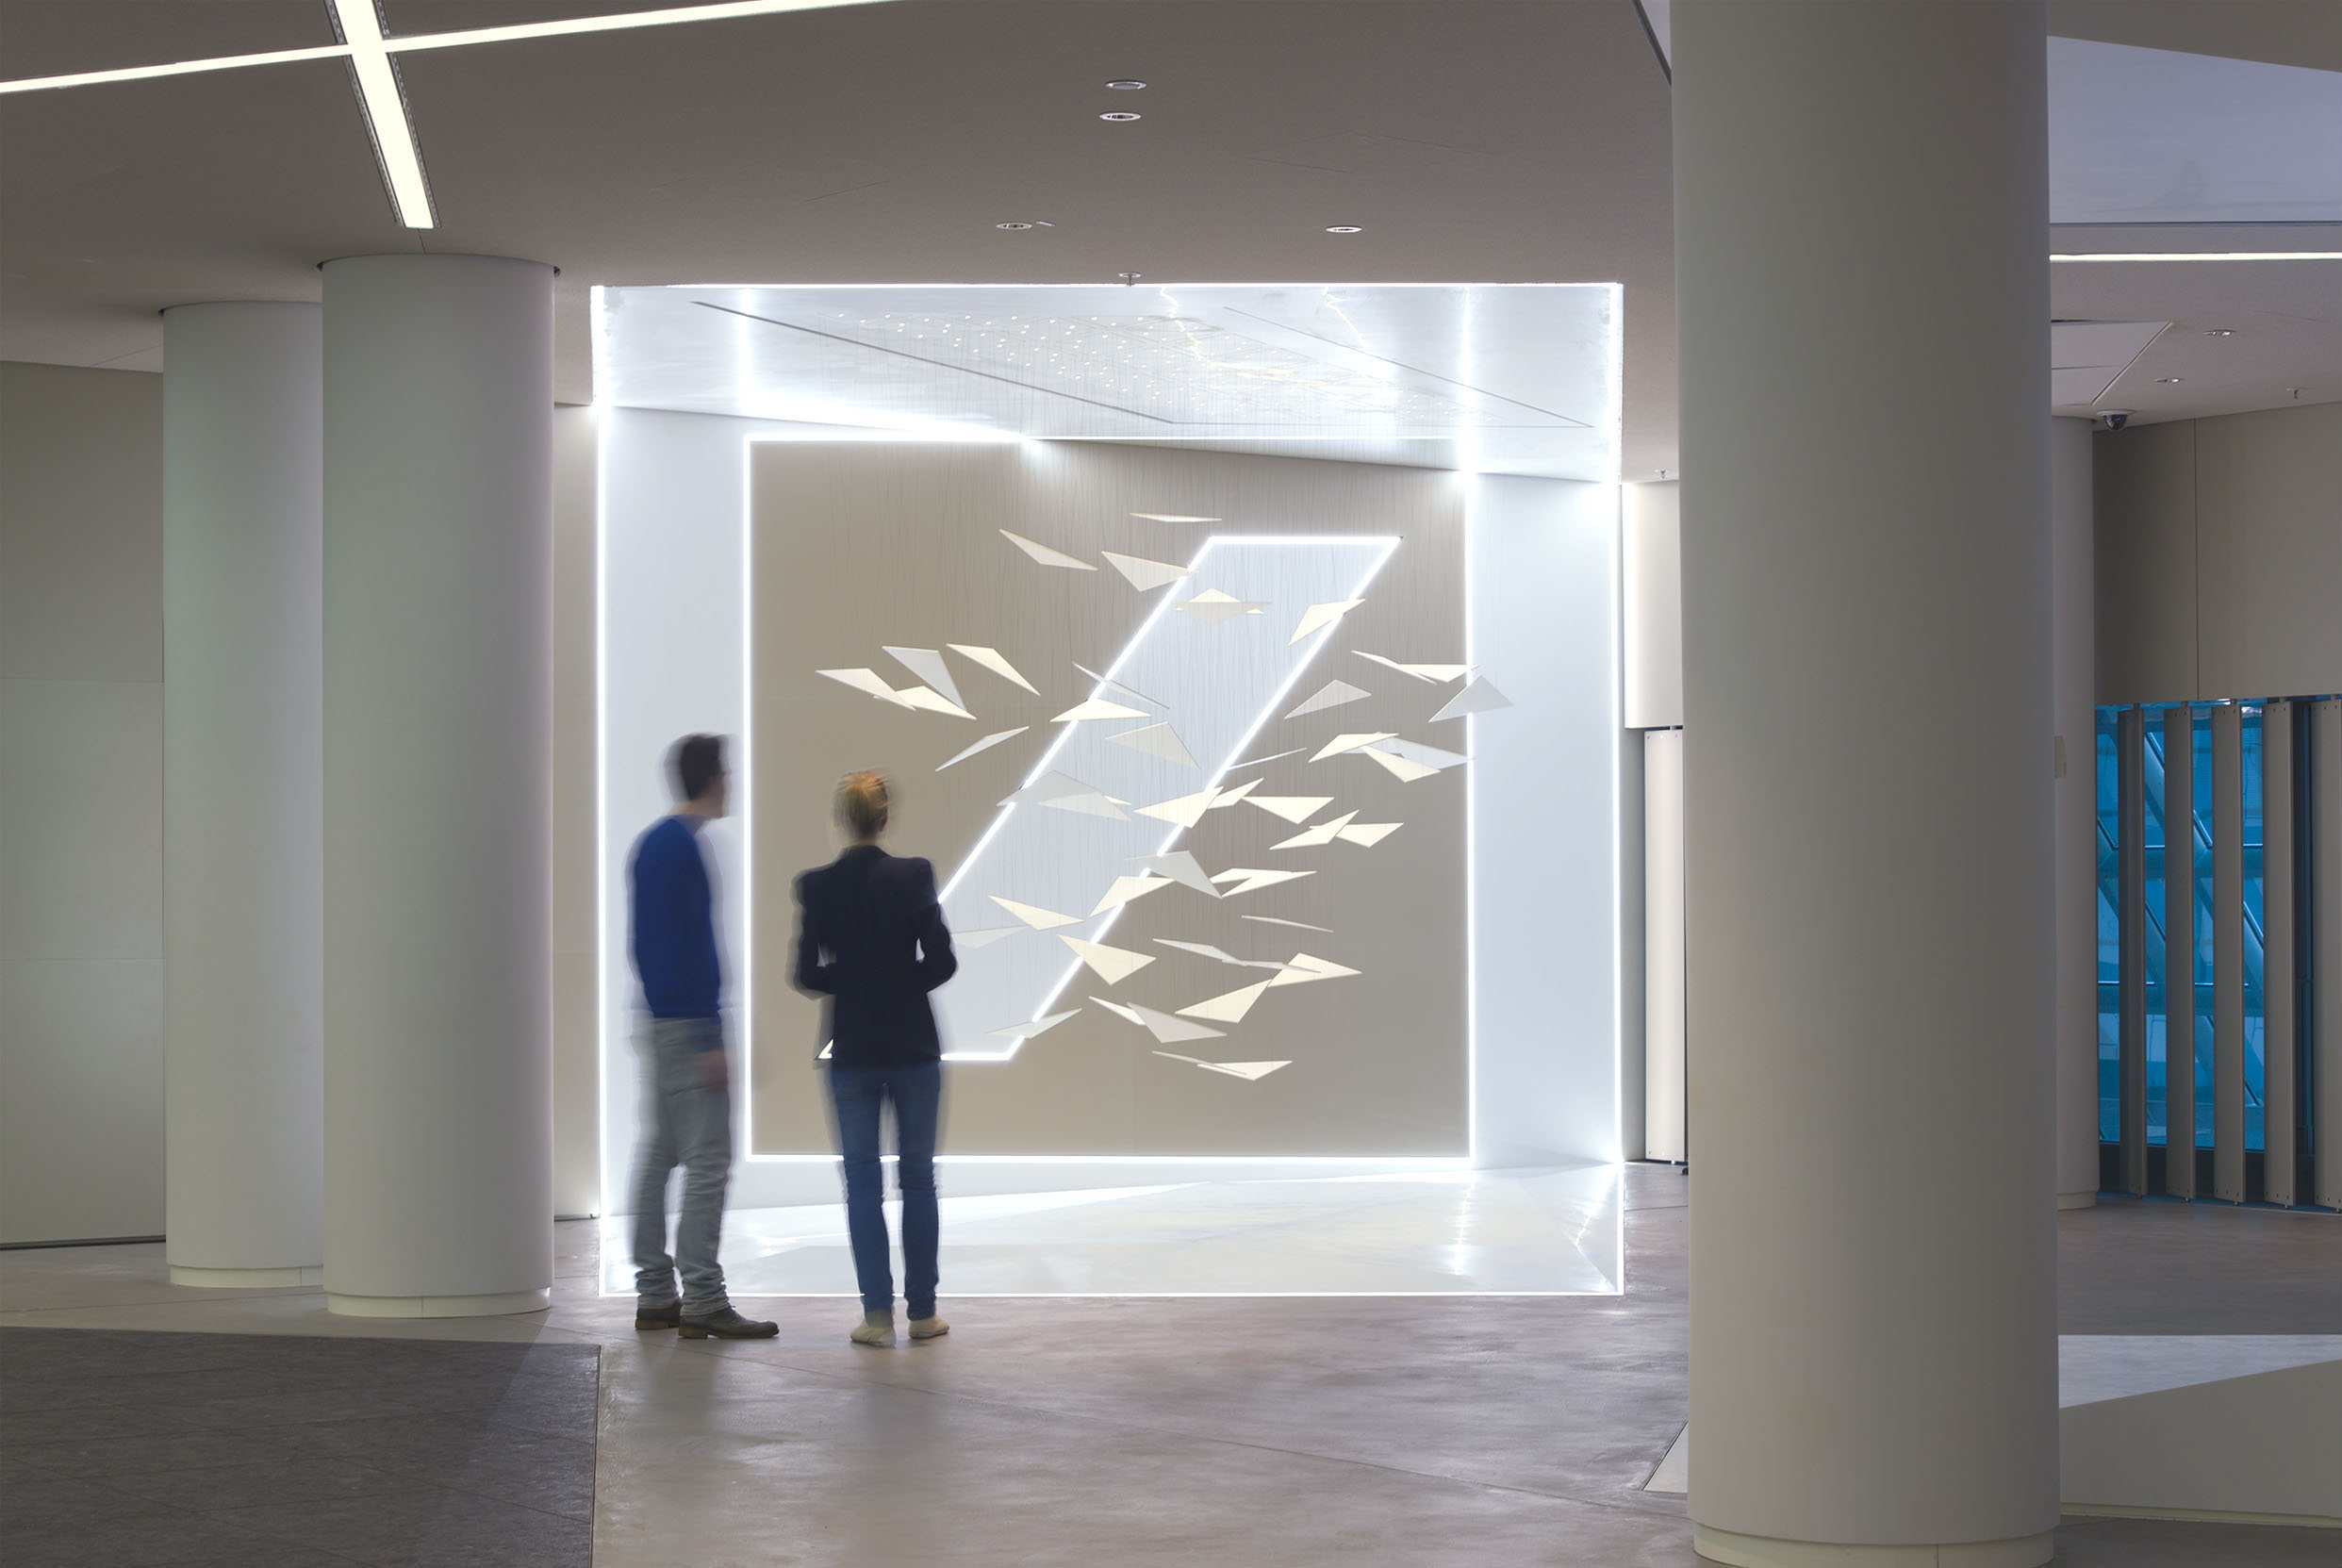 deutsche-bank-brand-space_coorporate-interior-design_coordination-berlin_02.jpg